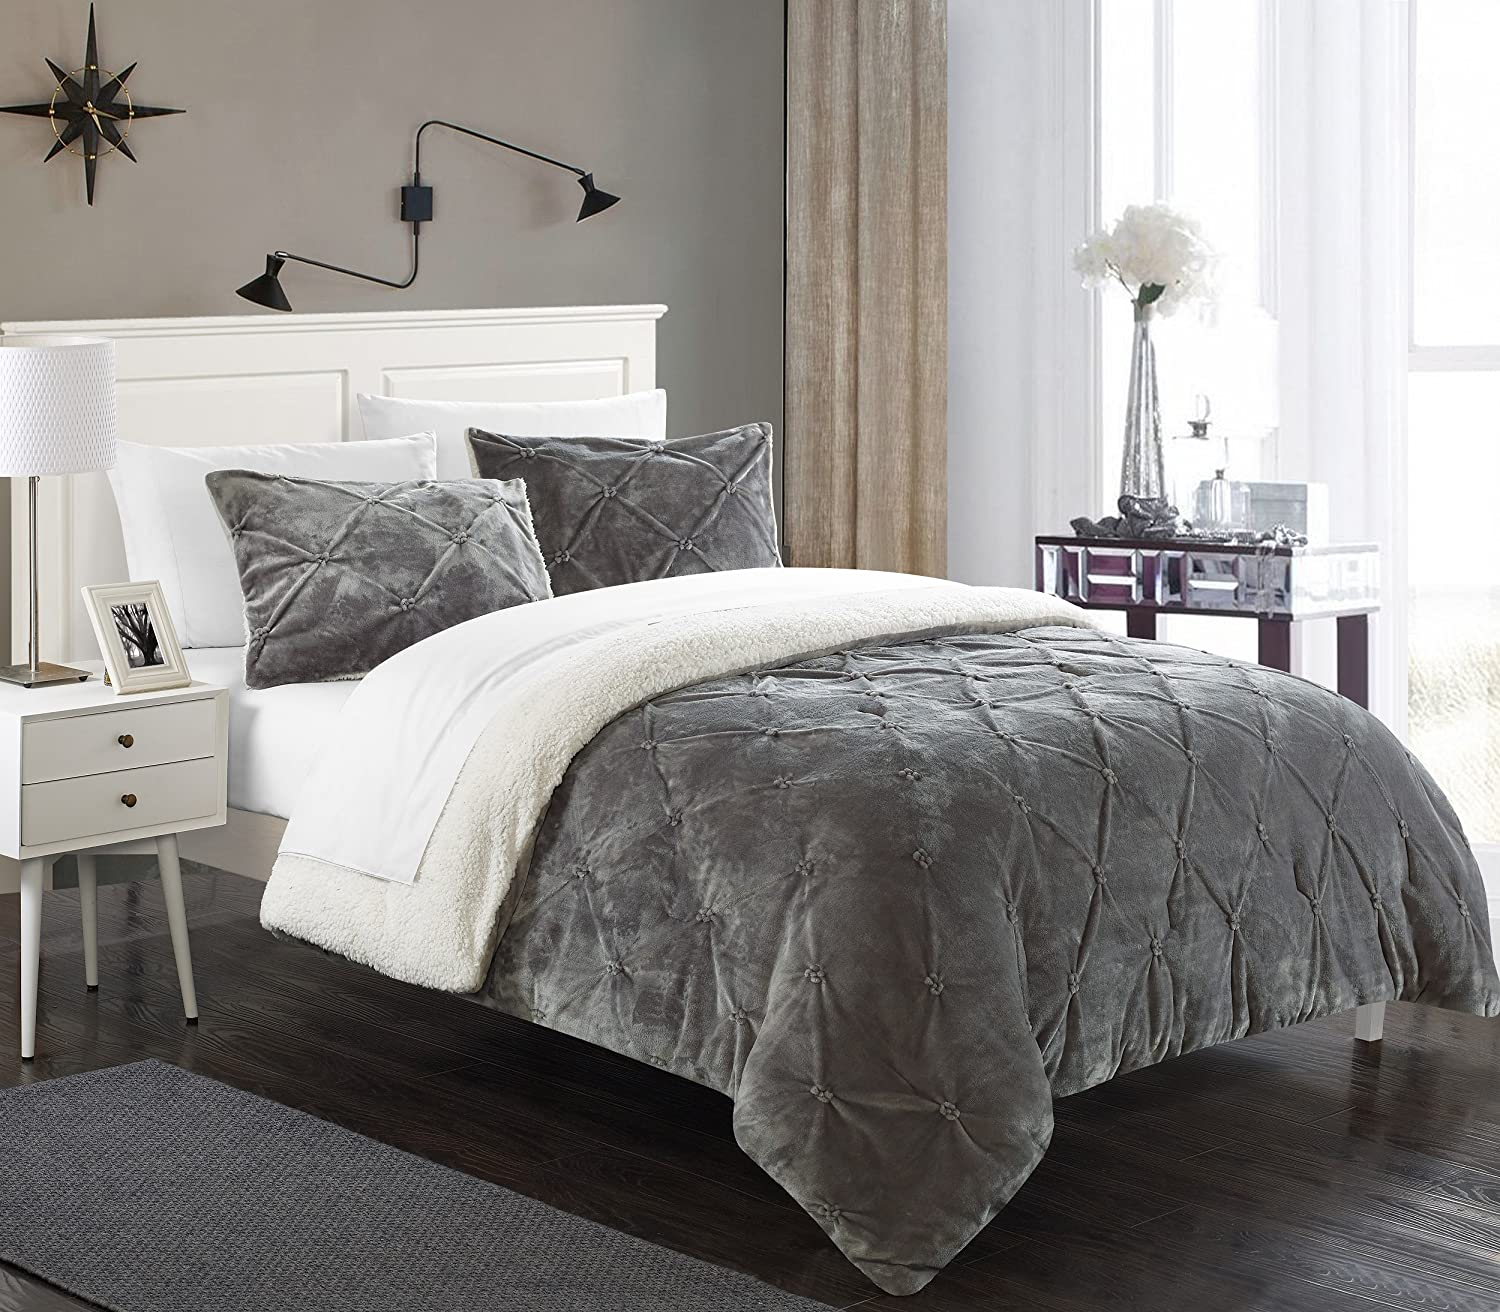 Pintuck comforter sets sale ease bedding with style - Bedroom sheets and comforter sets ...